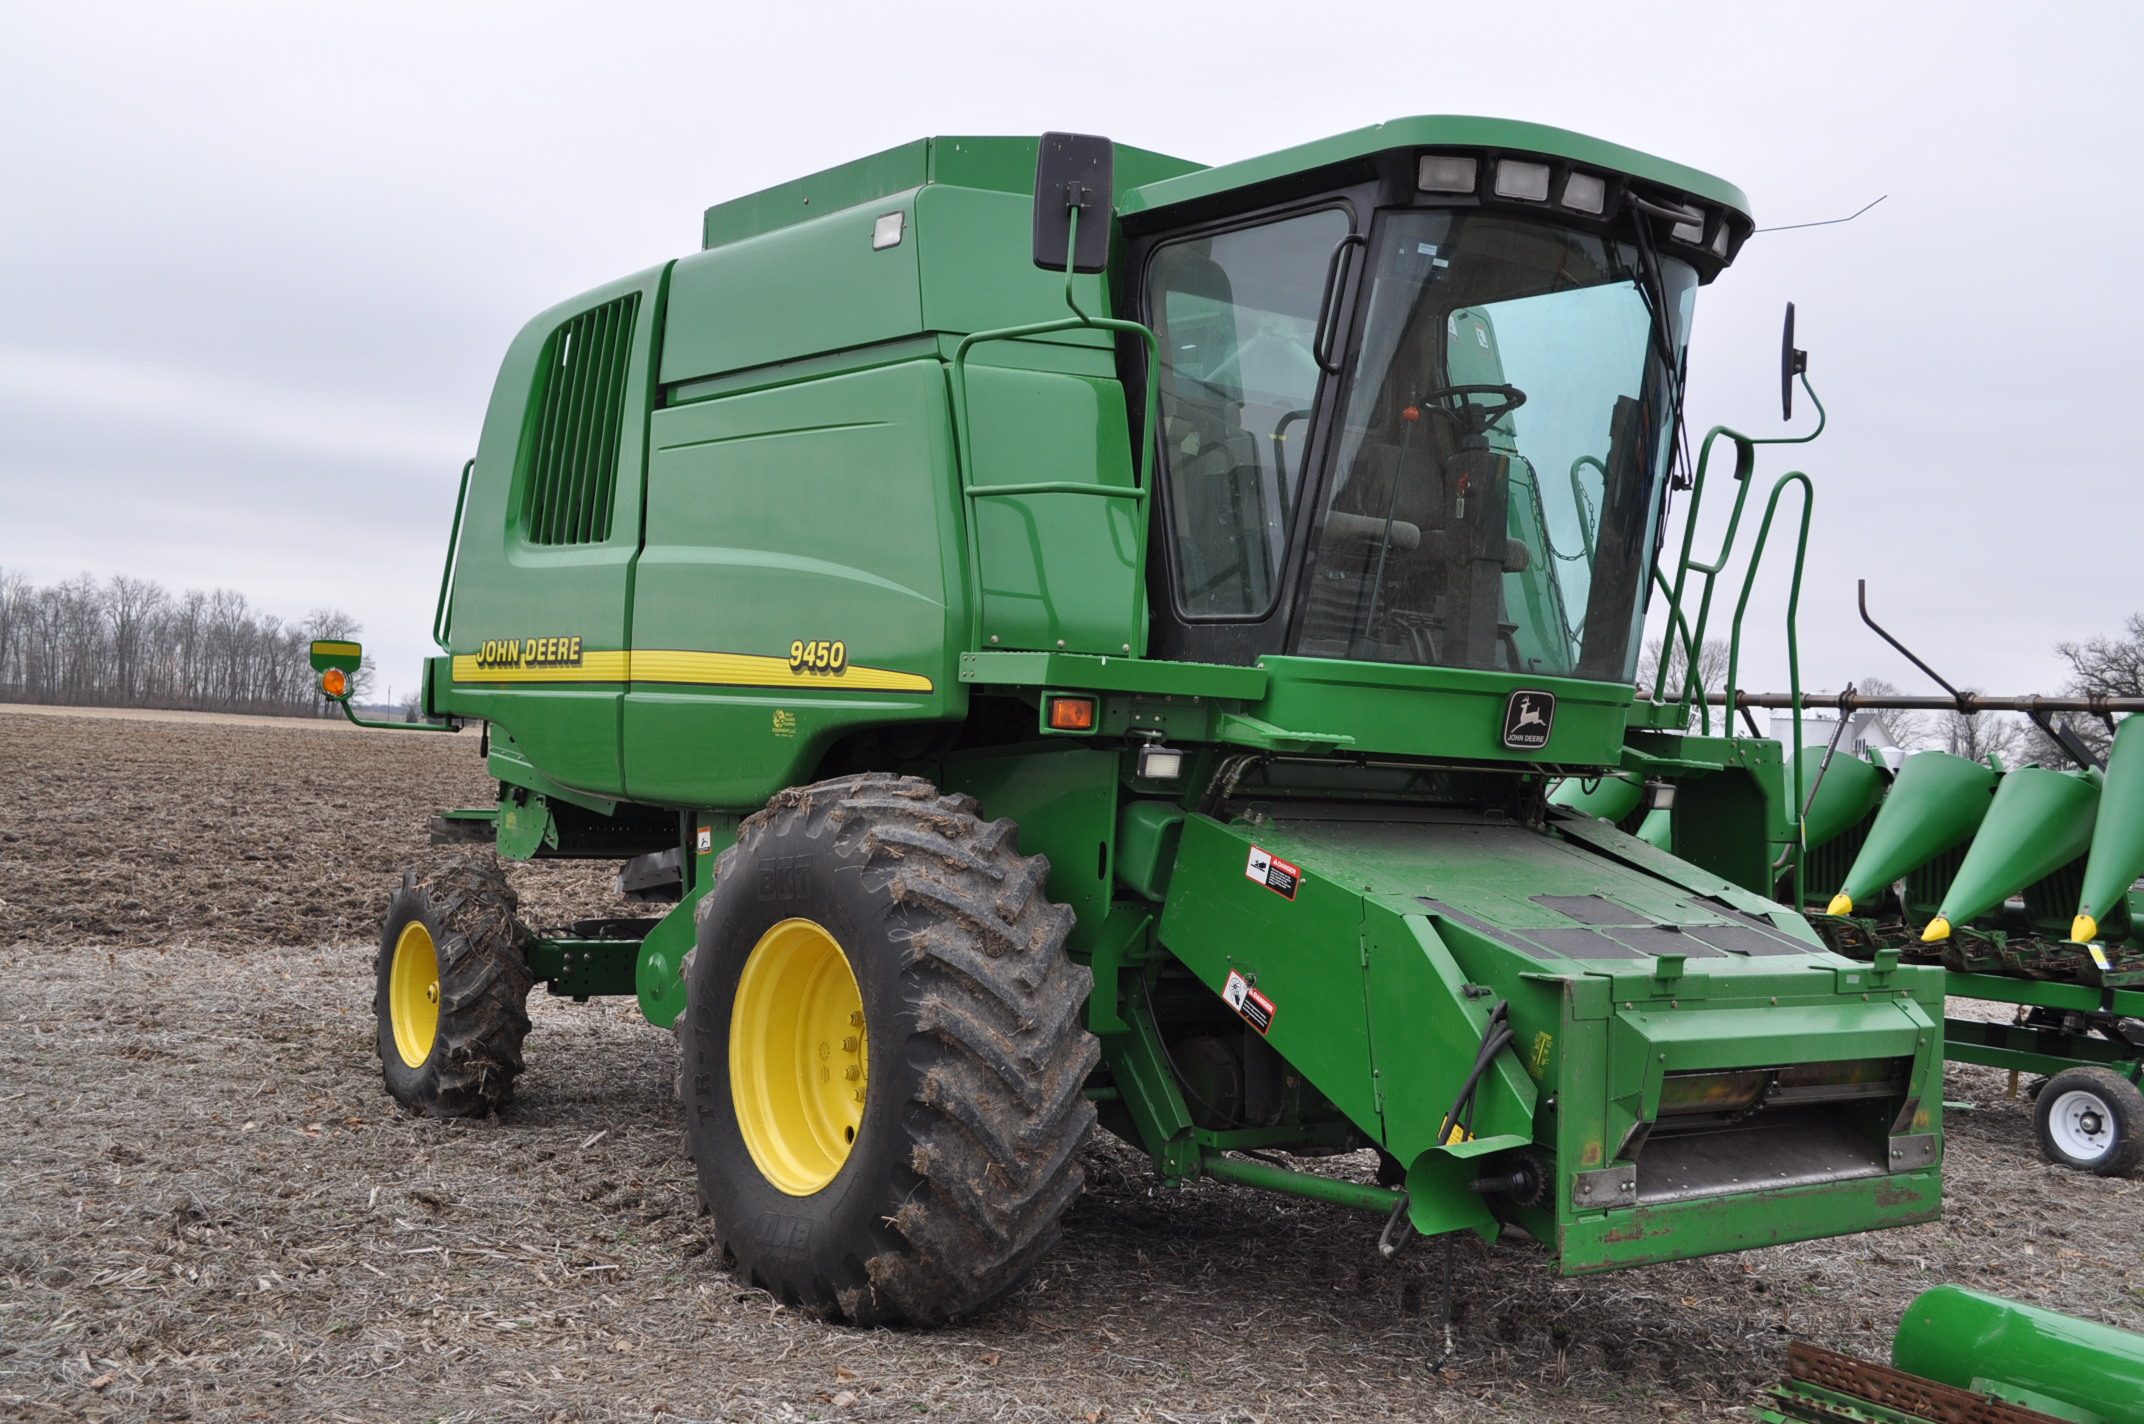 John Deere 9450 combine, NEW 24.5-32 drive, NEW 14.9-24 rear, chopper, spreader, 3335 engine hrs, - Image 4 of 18